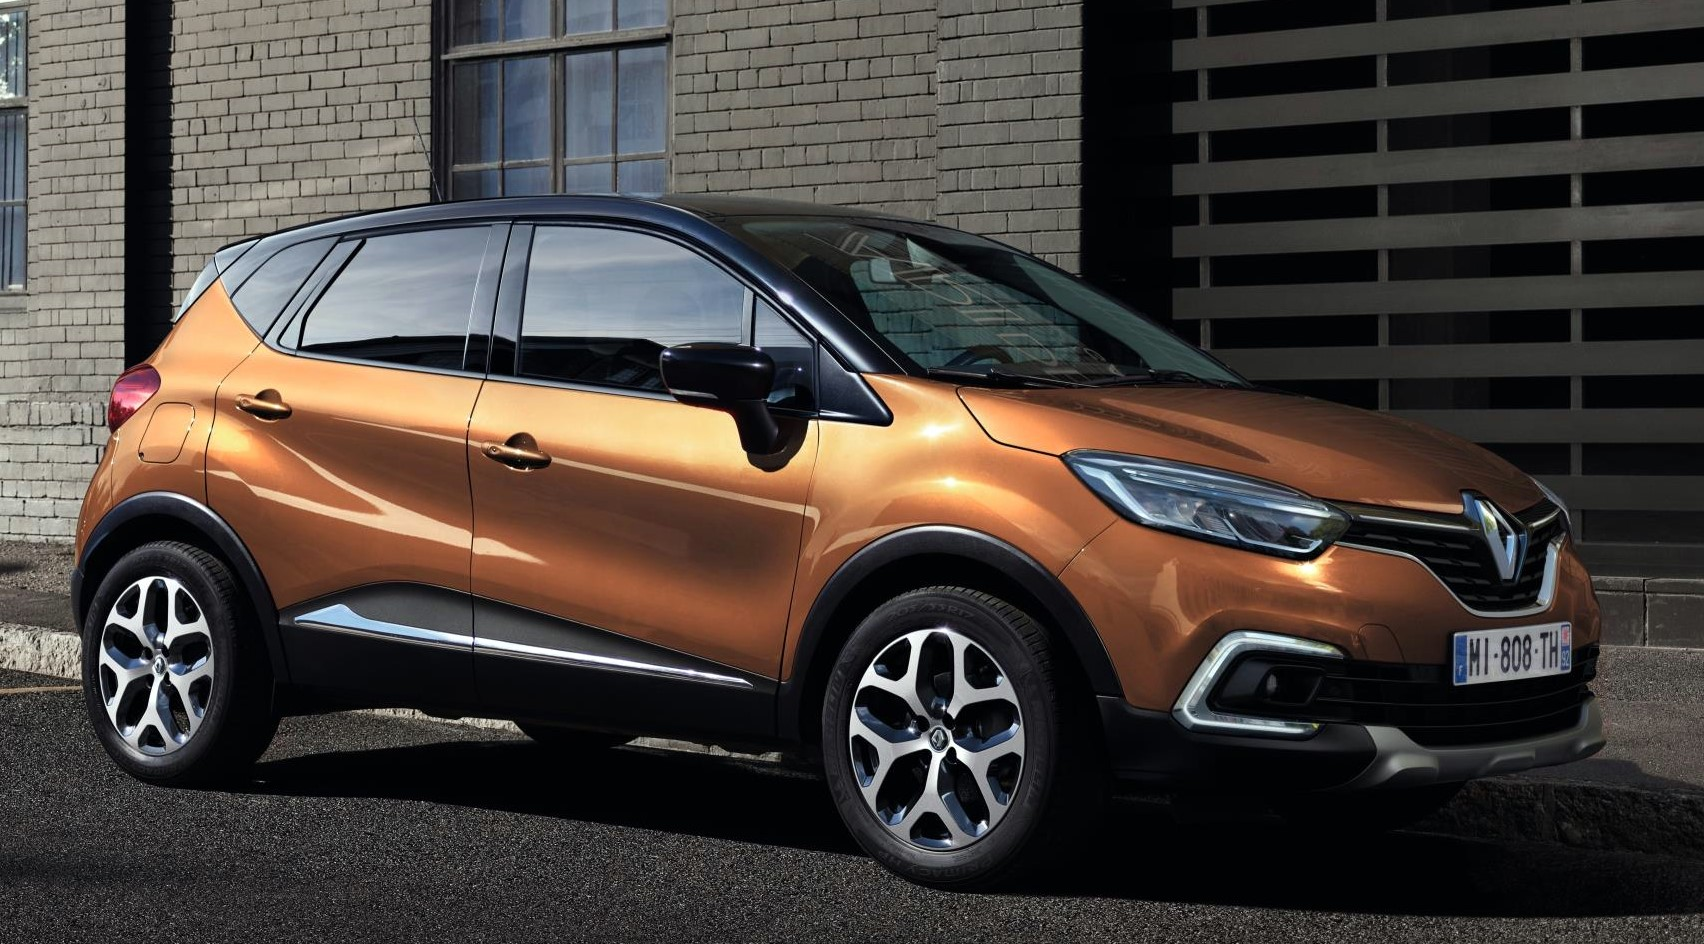 2017 renault captur uk pricing and specs. Black Bedroom Furniture Sets. Home Design Ideas